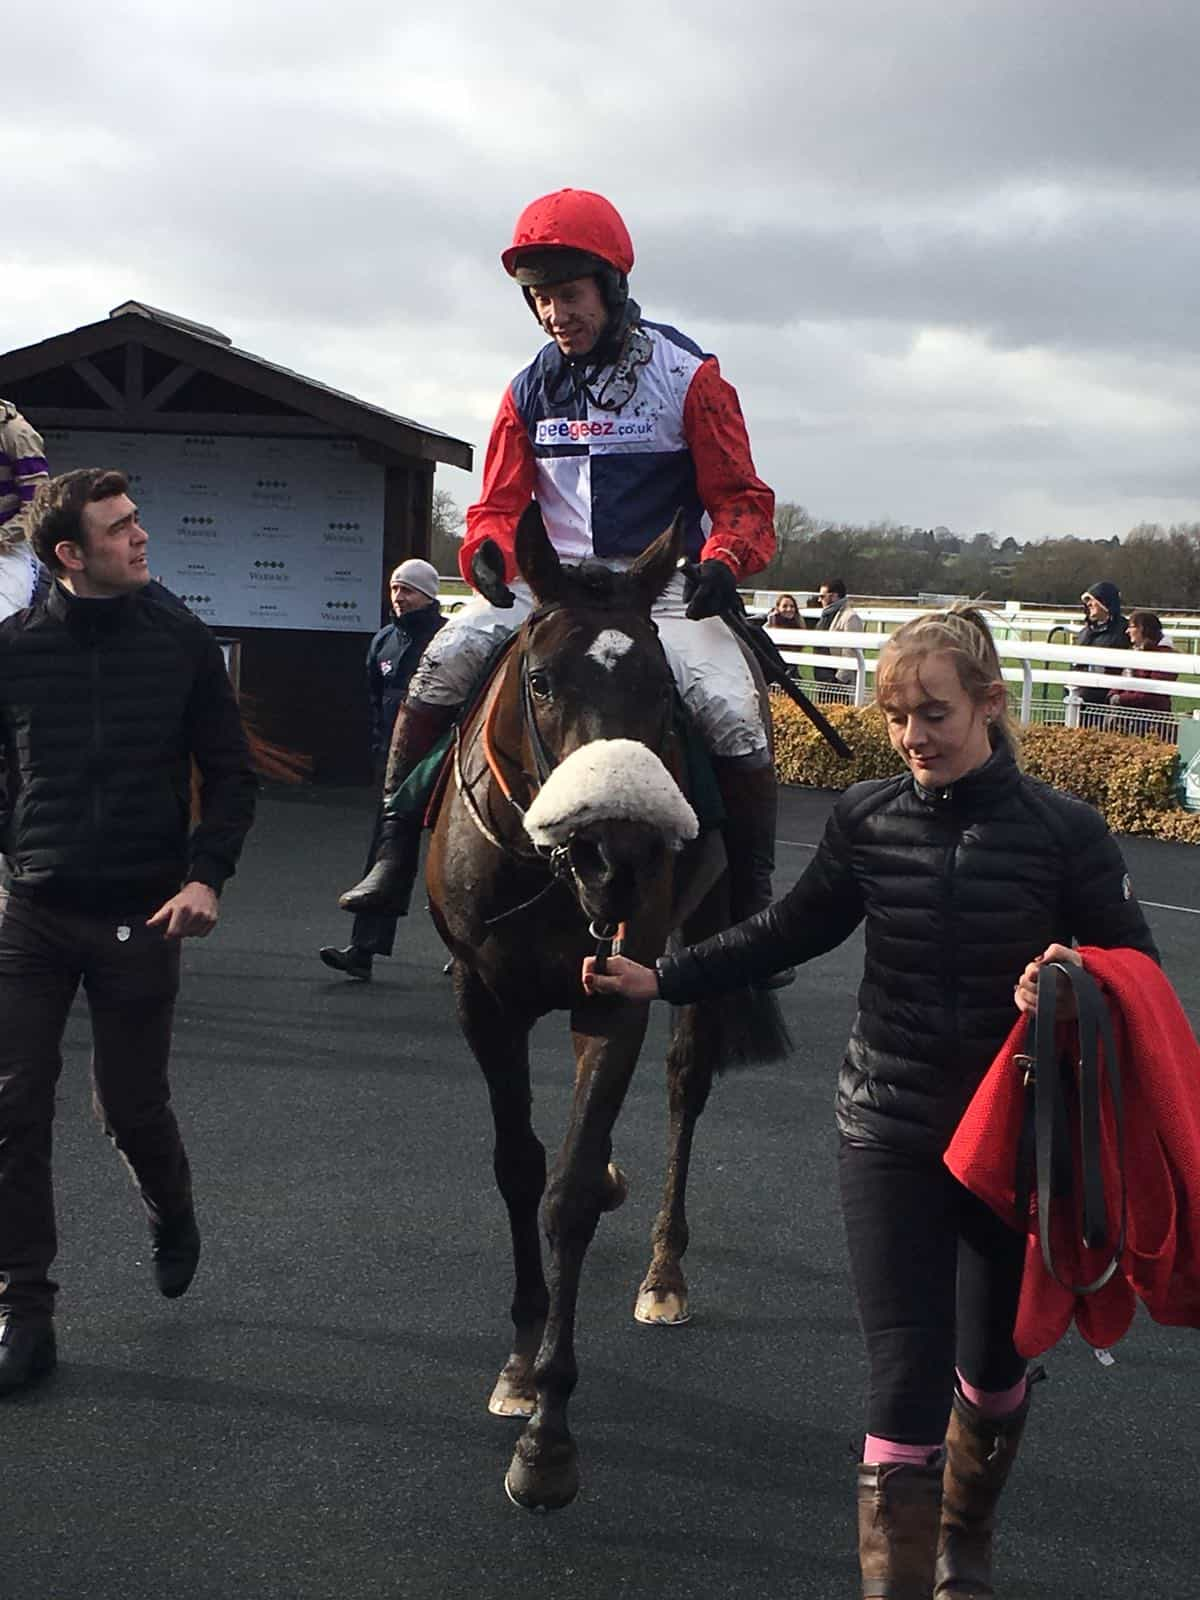 Swaffham Bulbeck is led in after his debut second at Warwick